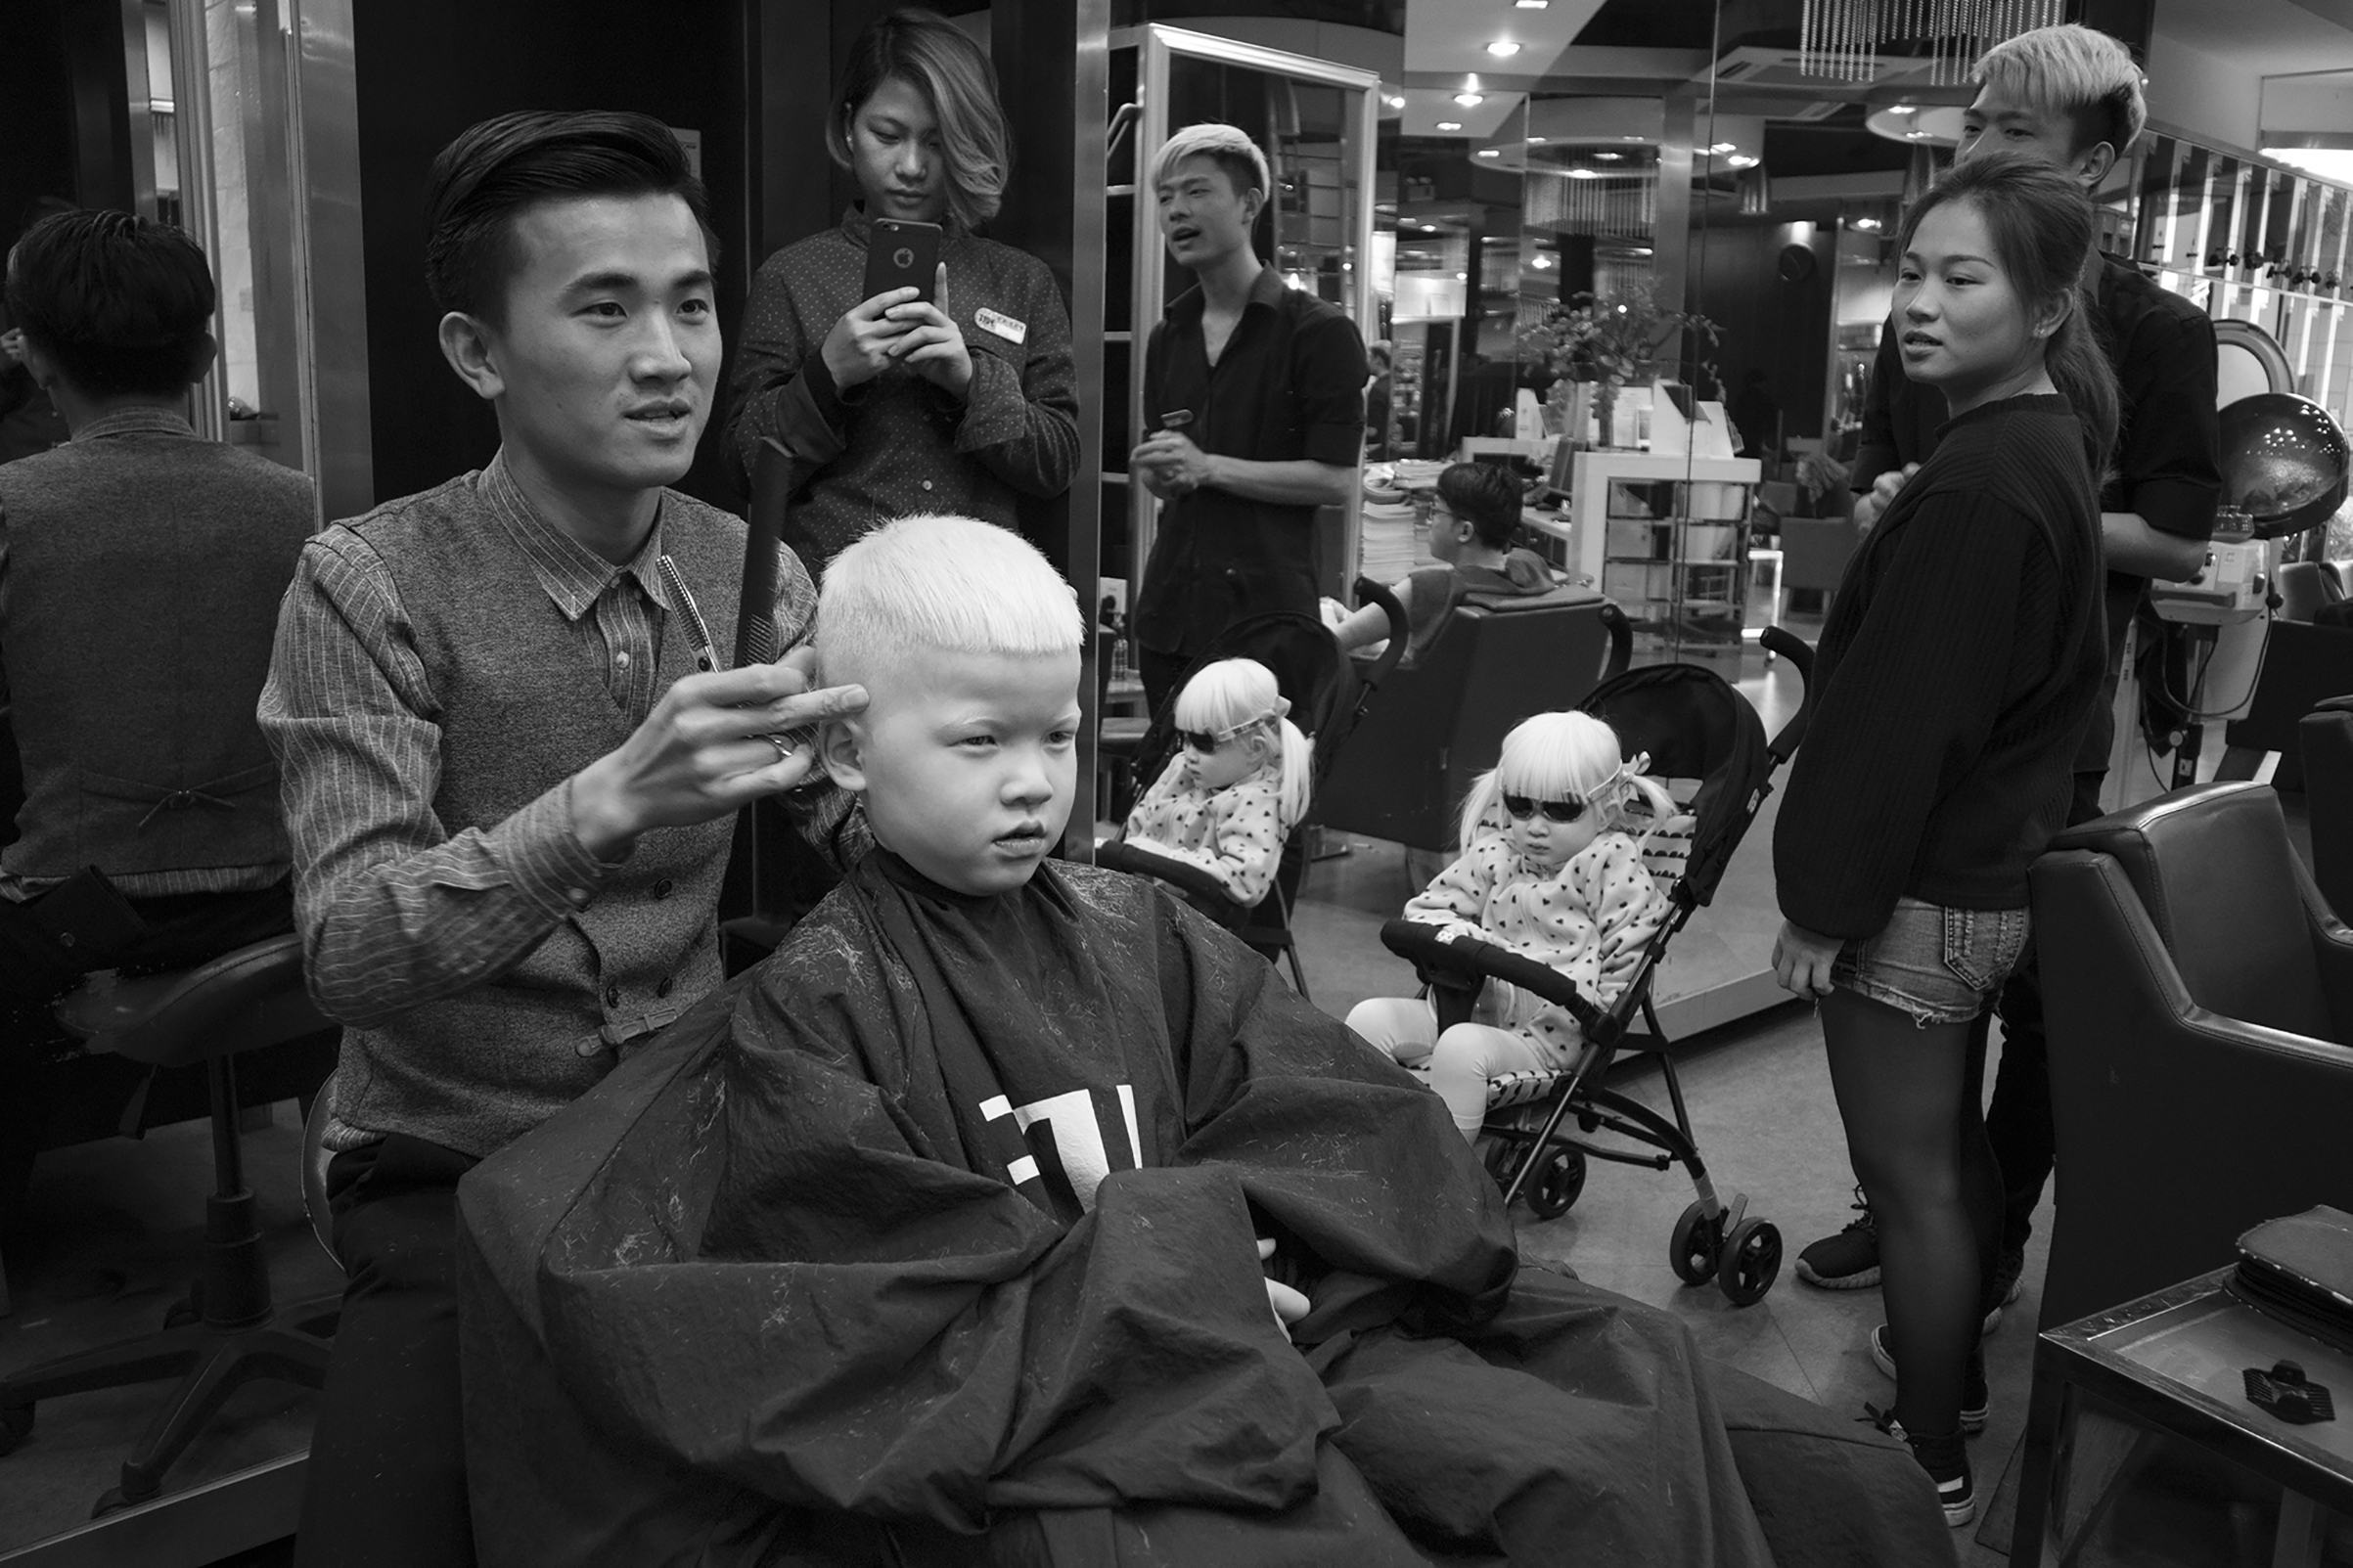 Forest gets a haircut in Guangzhou, China as Lotus watches from a stroller. Adopting both children at once required a three week trip to China.